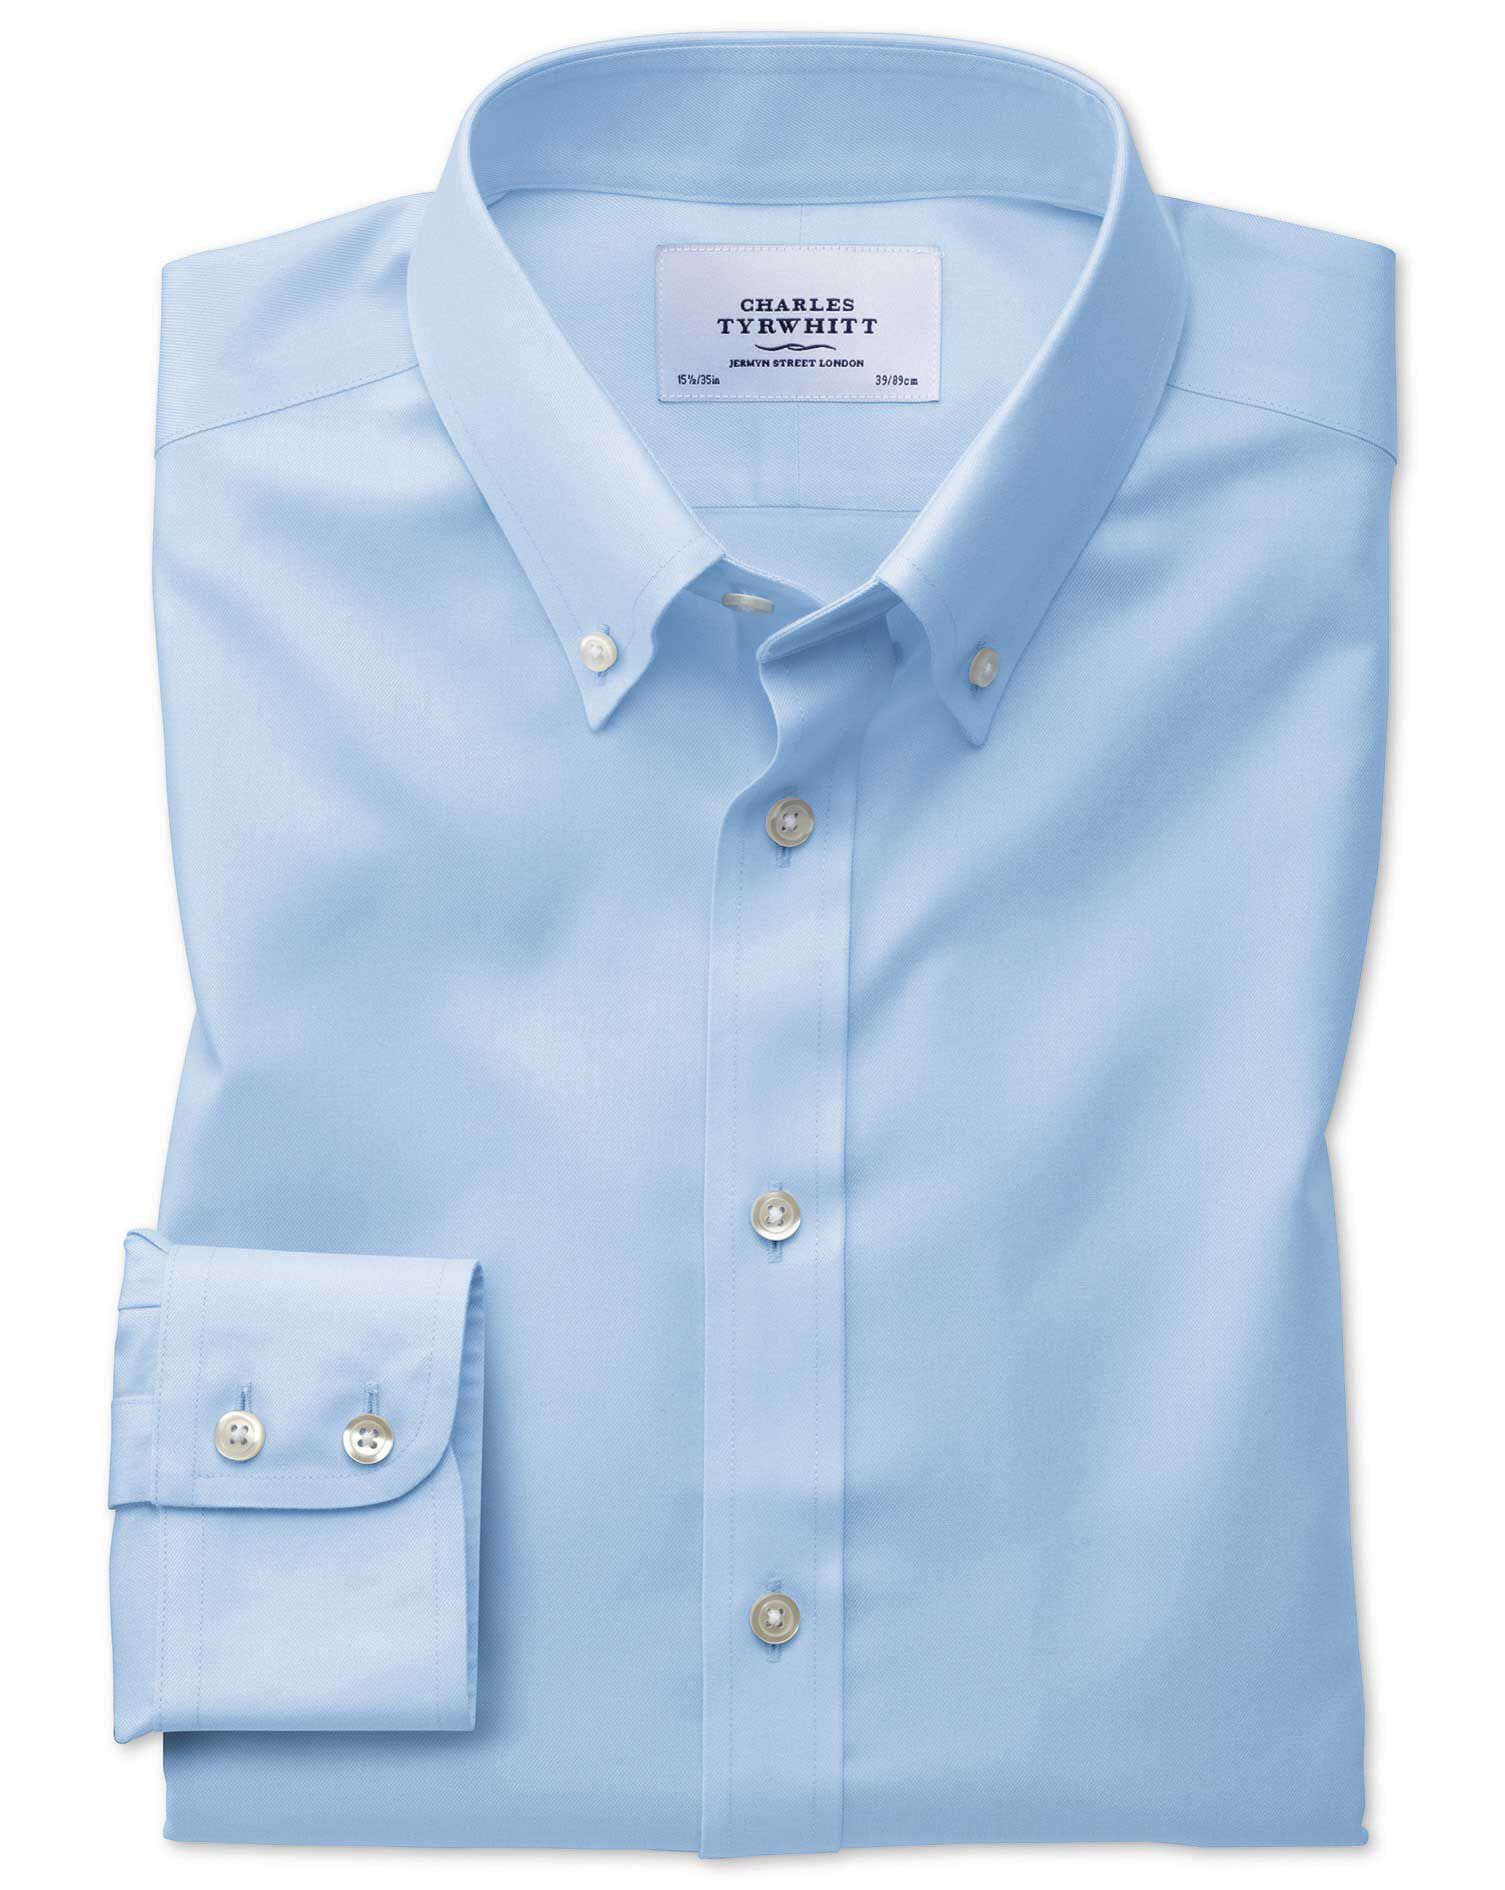 Extra Slim Fit Button-Down Non-Iron Twill Sky Blue Cotton Formal Shirt Single Cuff Size 15.5/35 by C